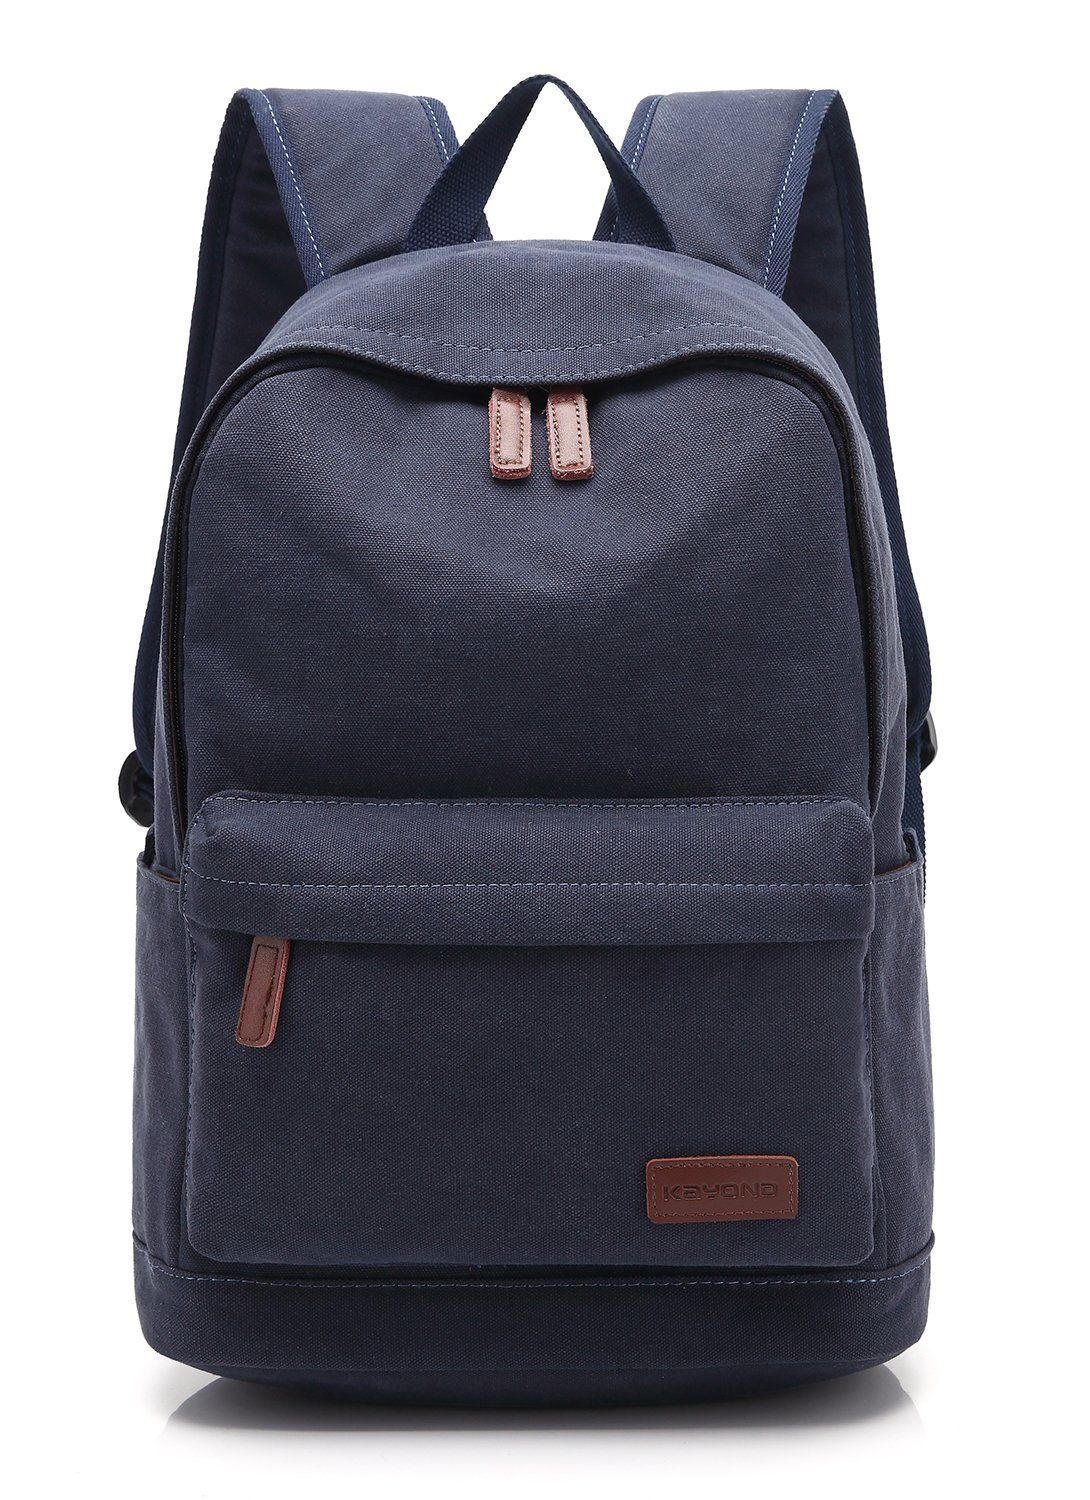 KAYOND Casual Style Lightweight canvas Laptop Bag/Cute backpacks ...